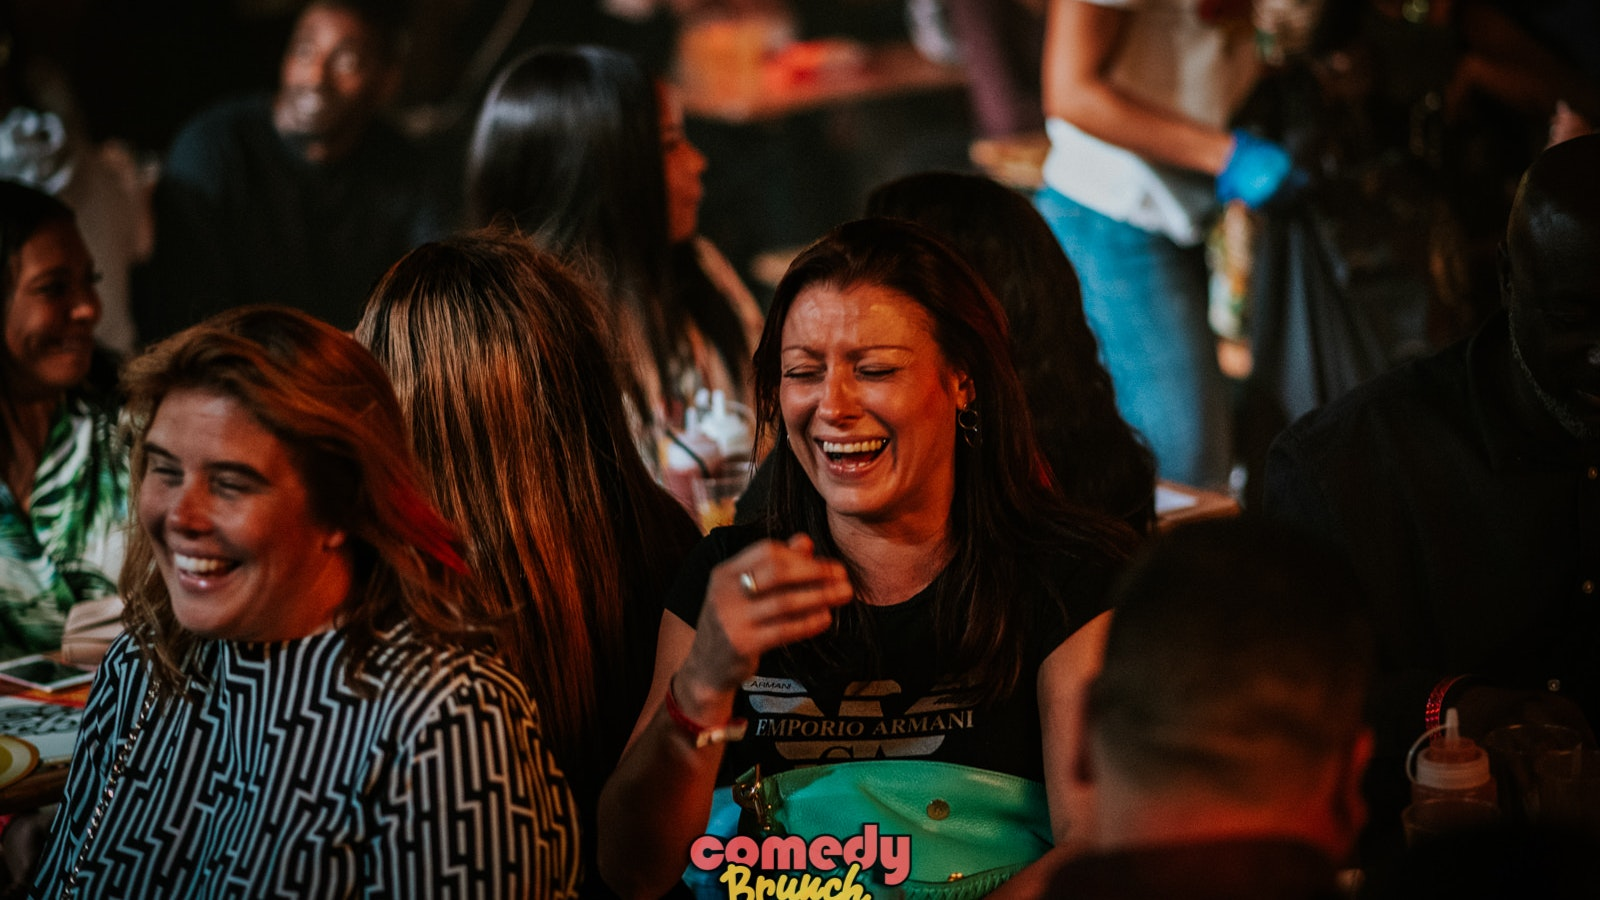 Comedy Brunch – 25th April